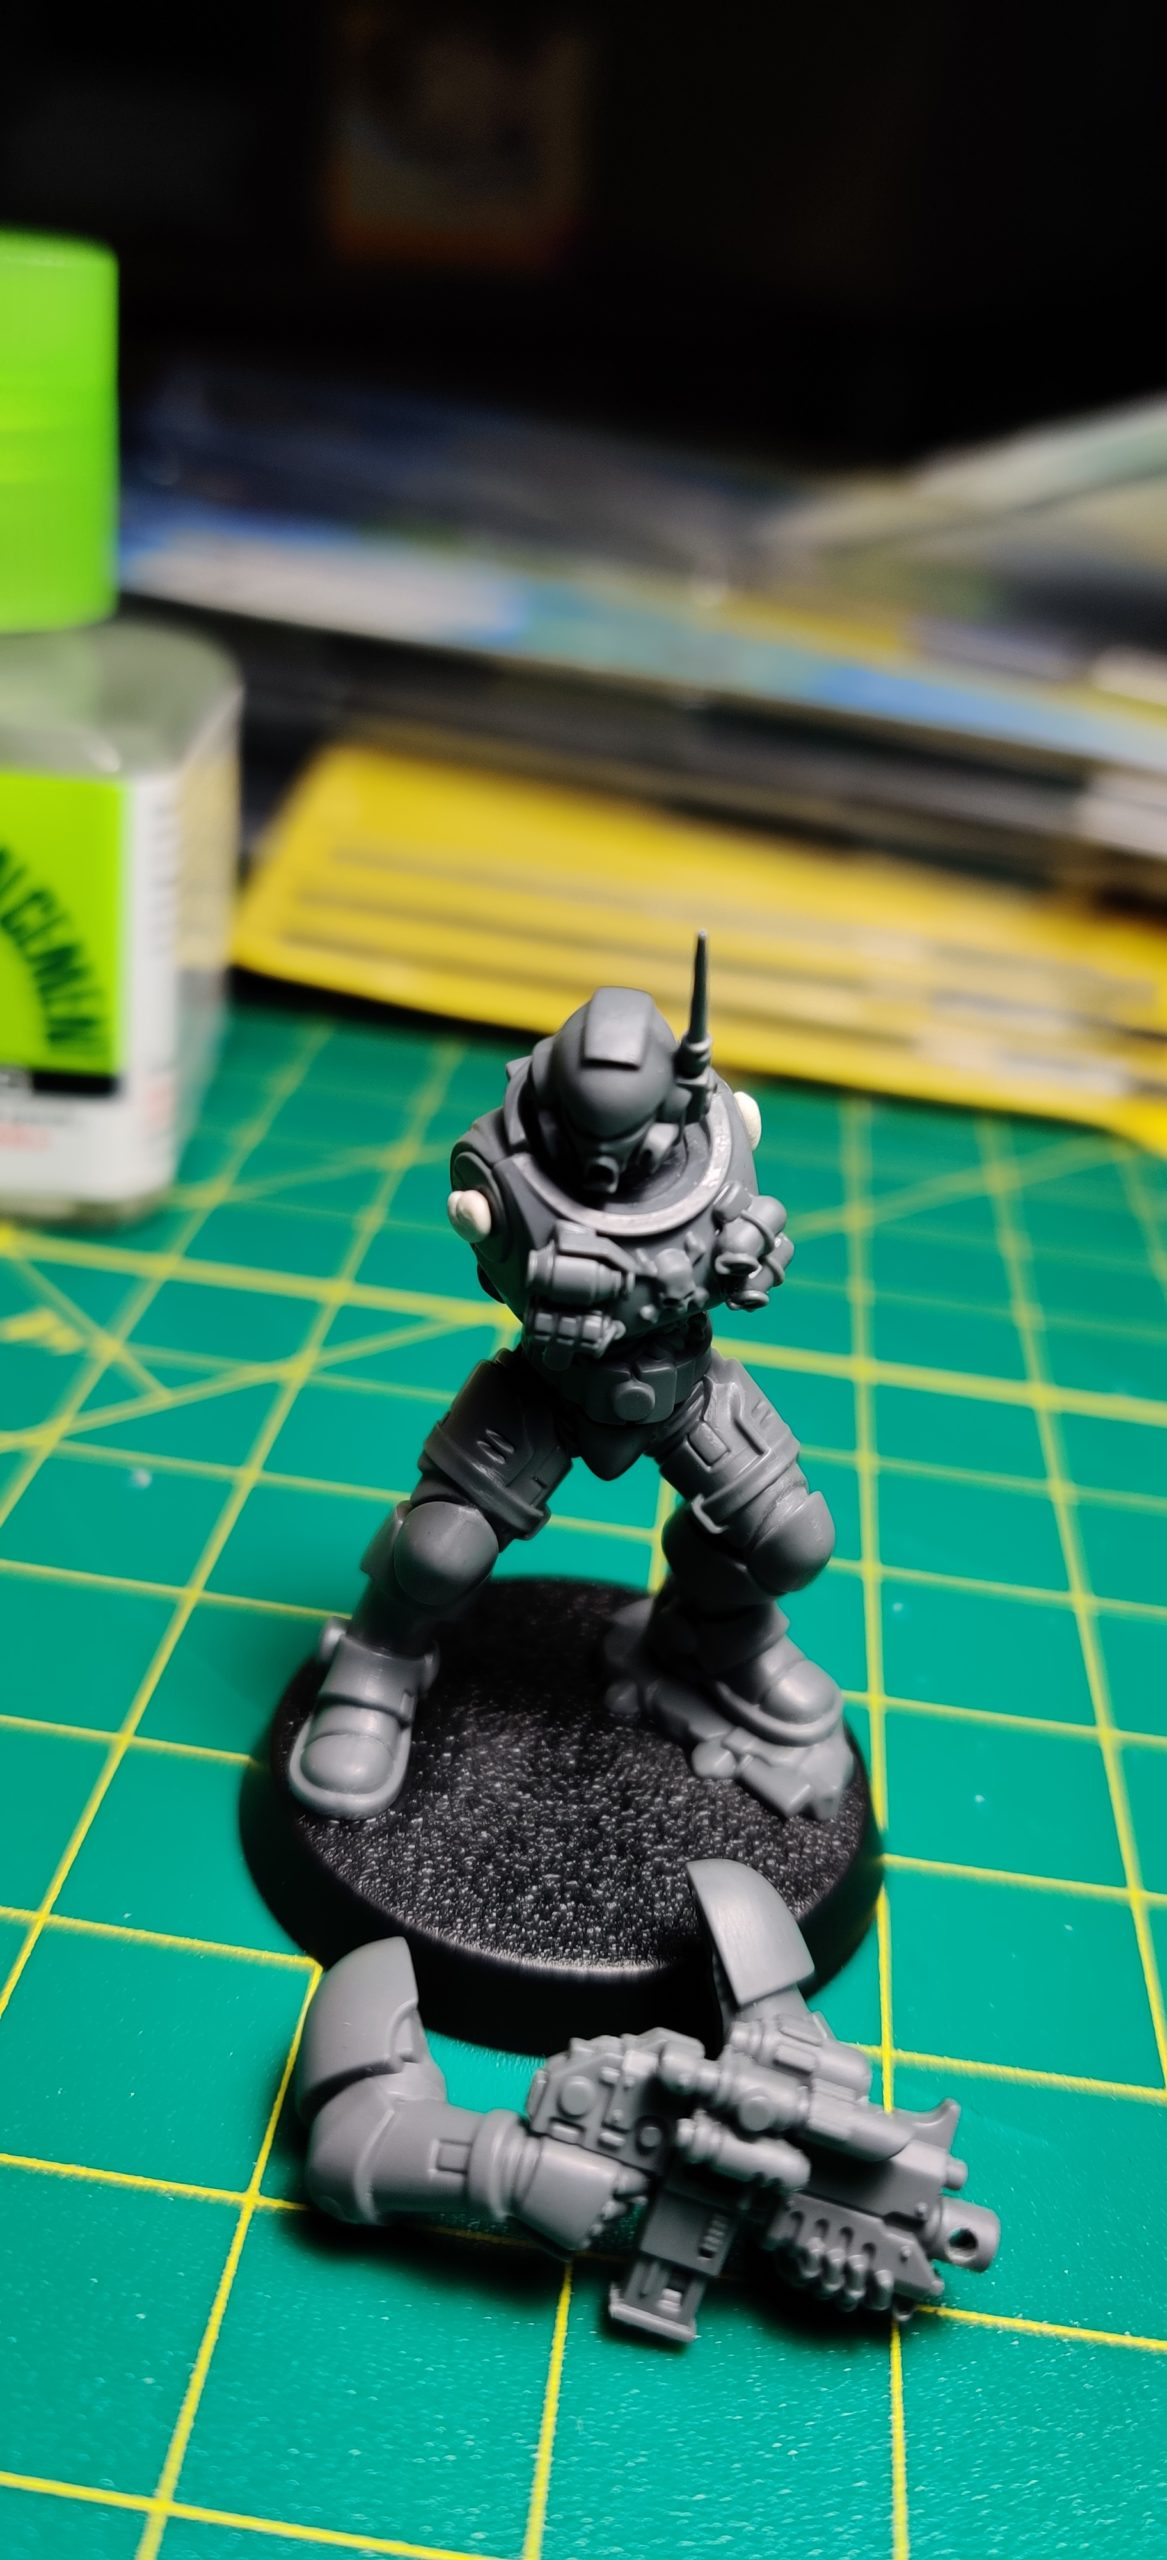 Primaris Space Marine Infiltrator/Incursor ready for a dry fit of his arms with Sticky Tac.